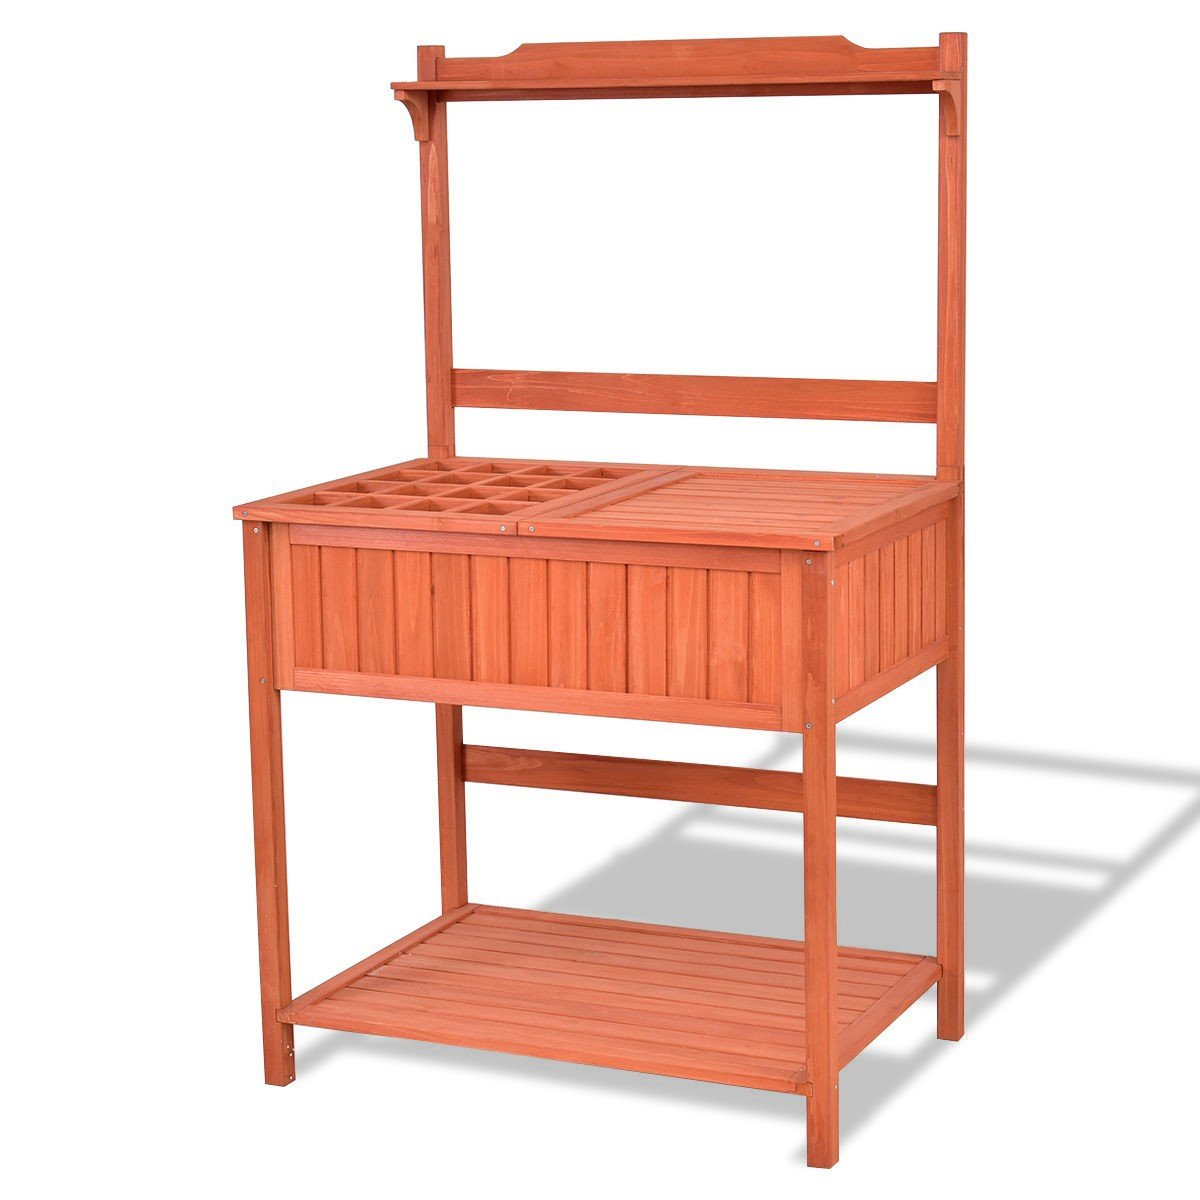 Garden Wooden Planting Potting Shelf Stand Workstation Table Outdoor Lawn Patio With Ebook